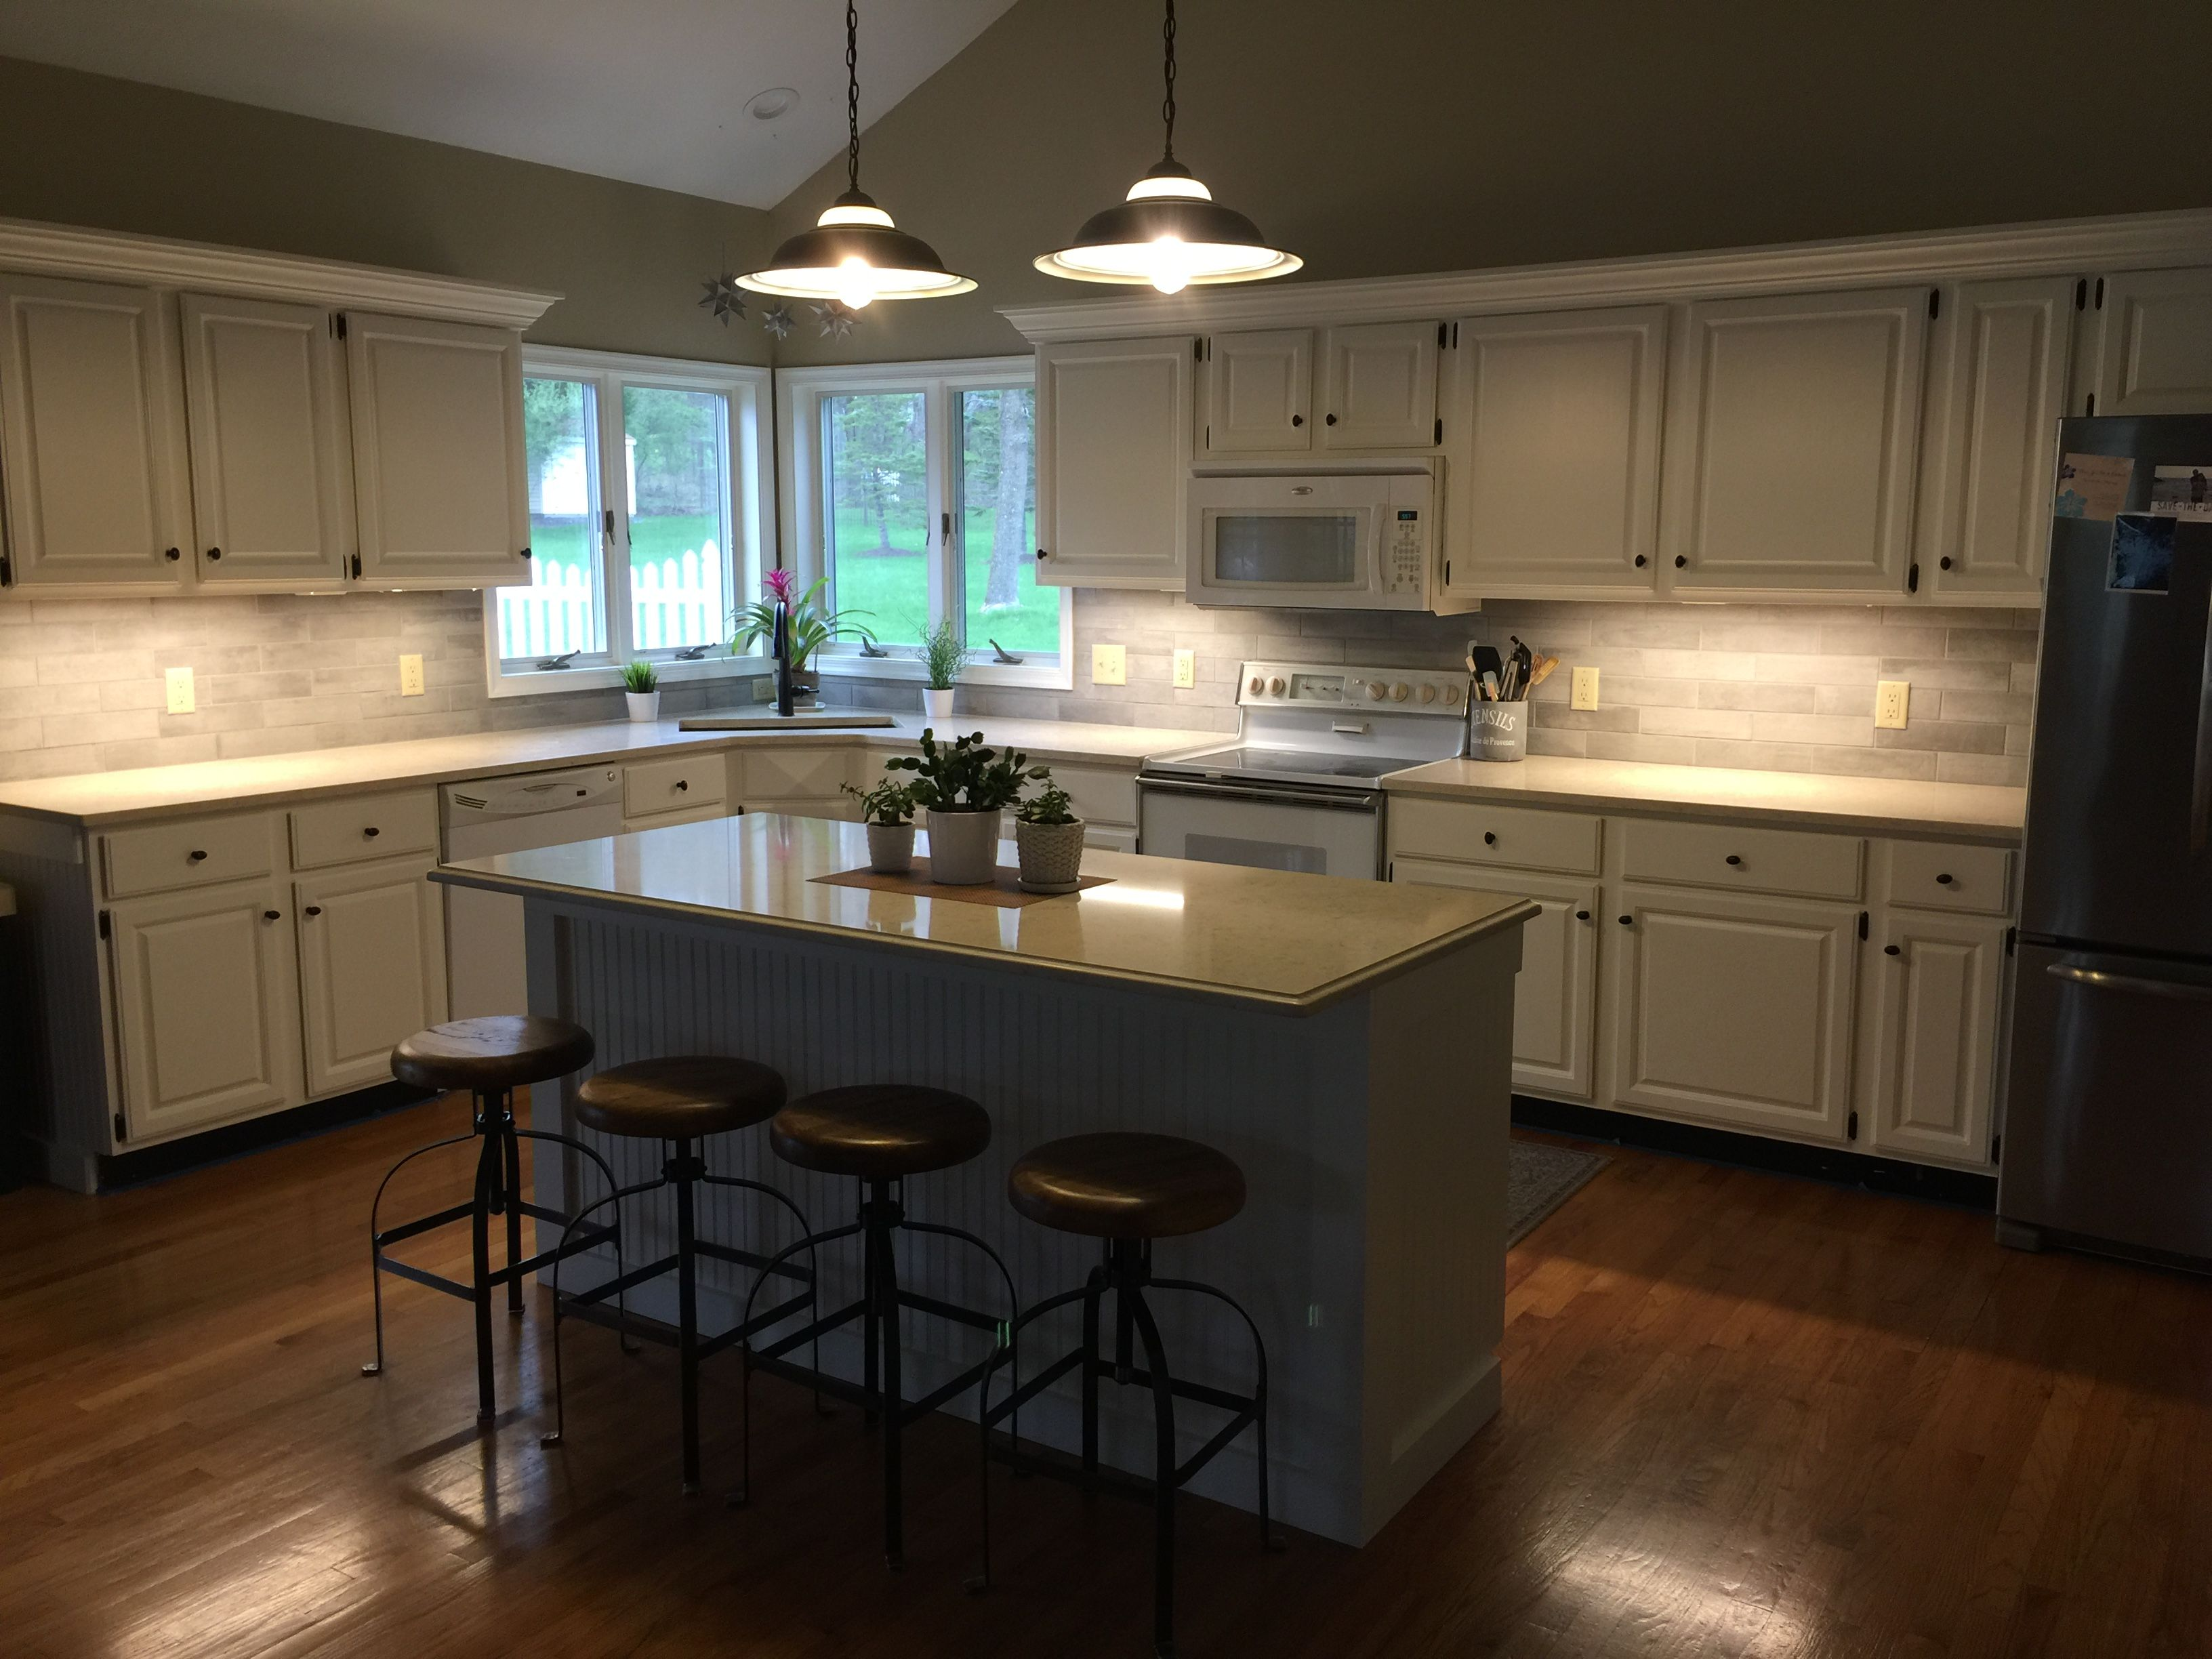 AFTER kitchen-DIY painted kitchen cabinets, spray painted ...